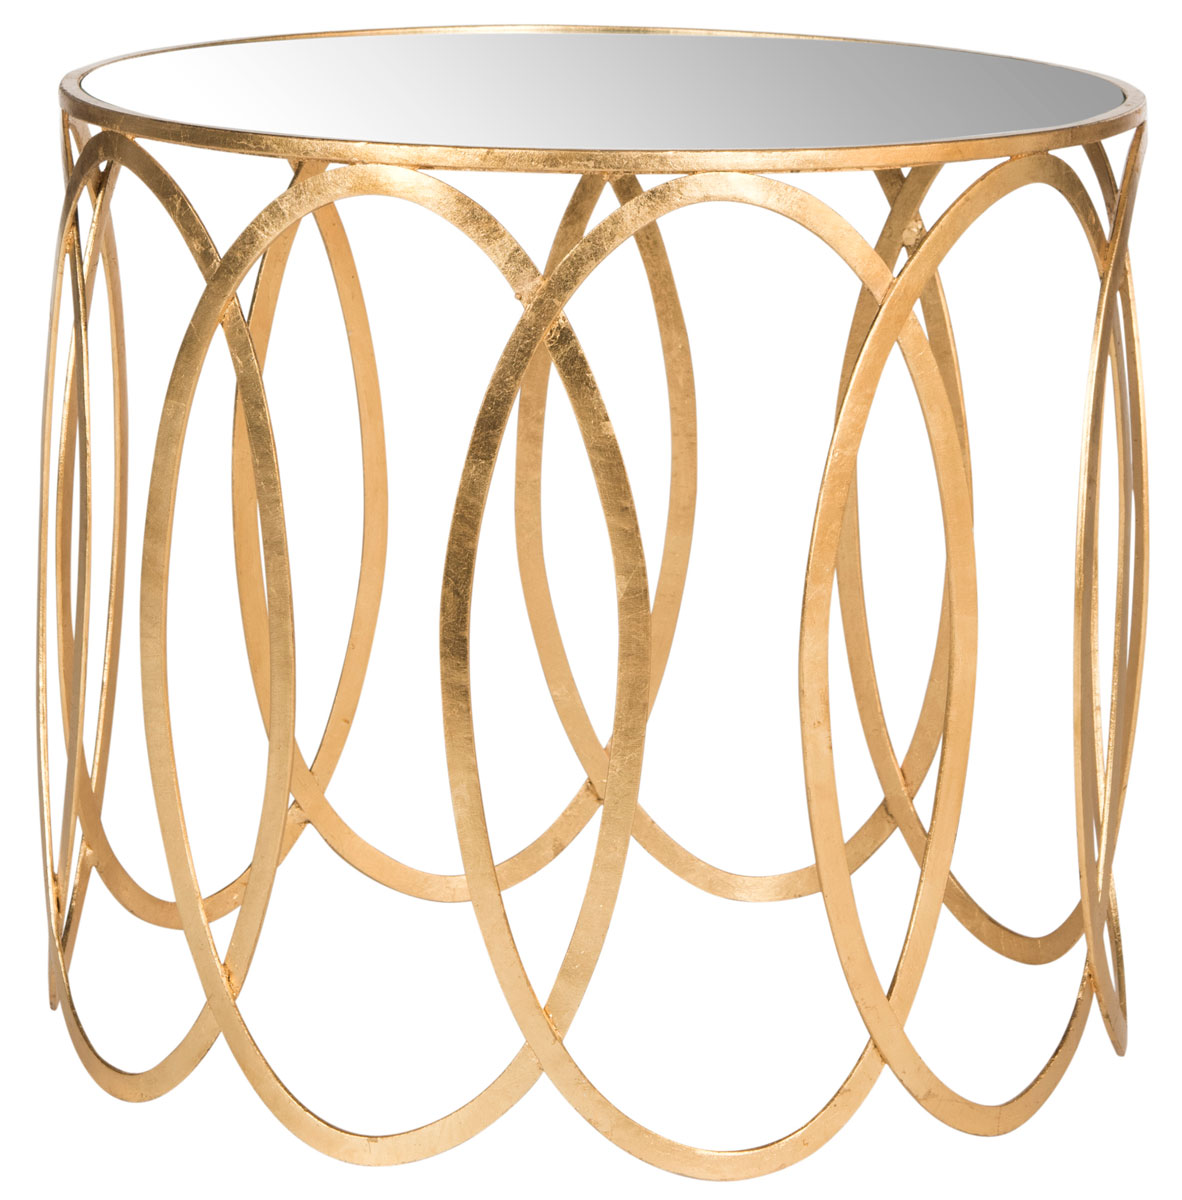 hall gold end table with accent white ceramic floor and small glass windows for middle room ideas attractive placed modern design used furniture homemade coffee designs next nest